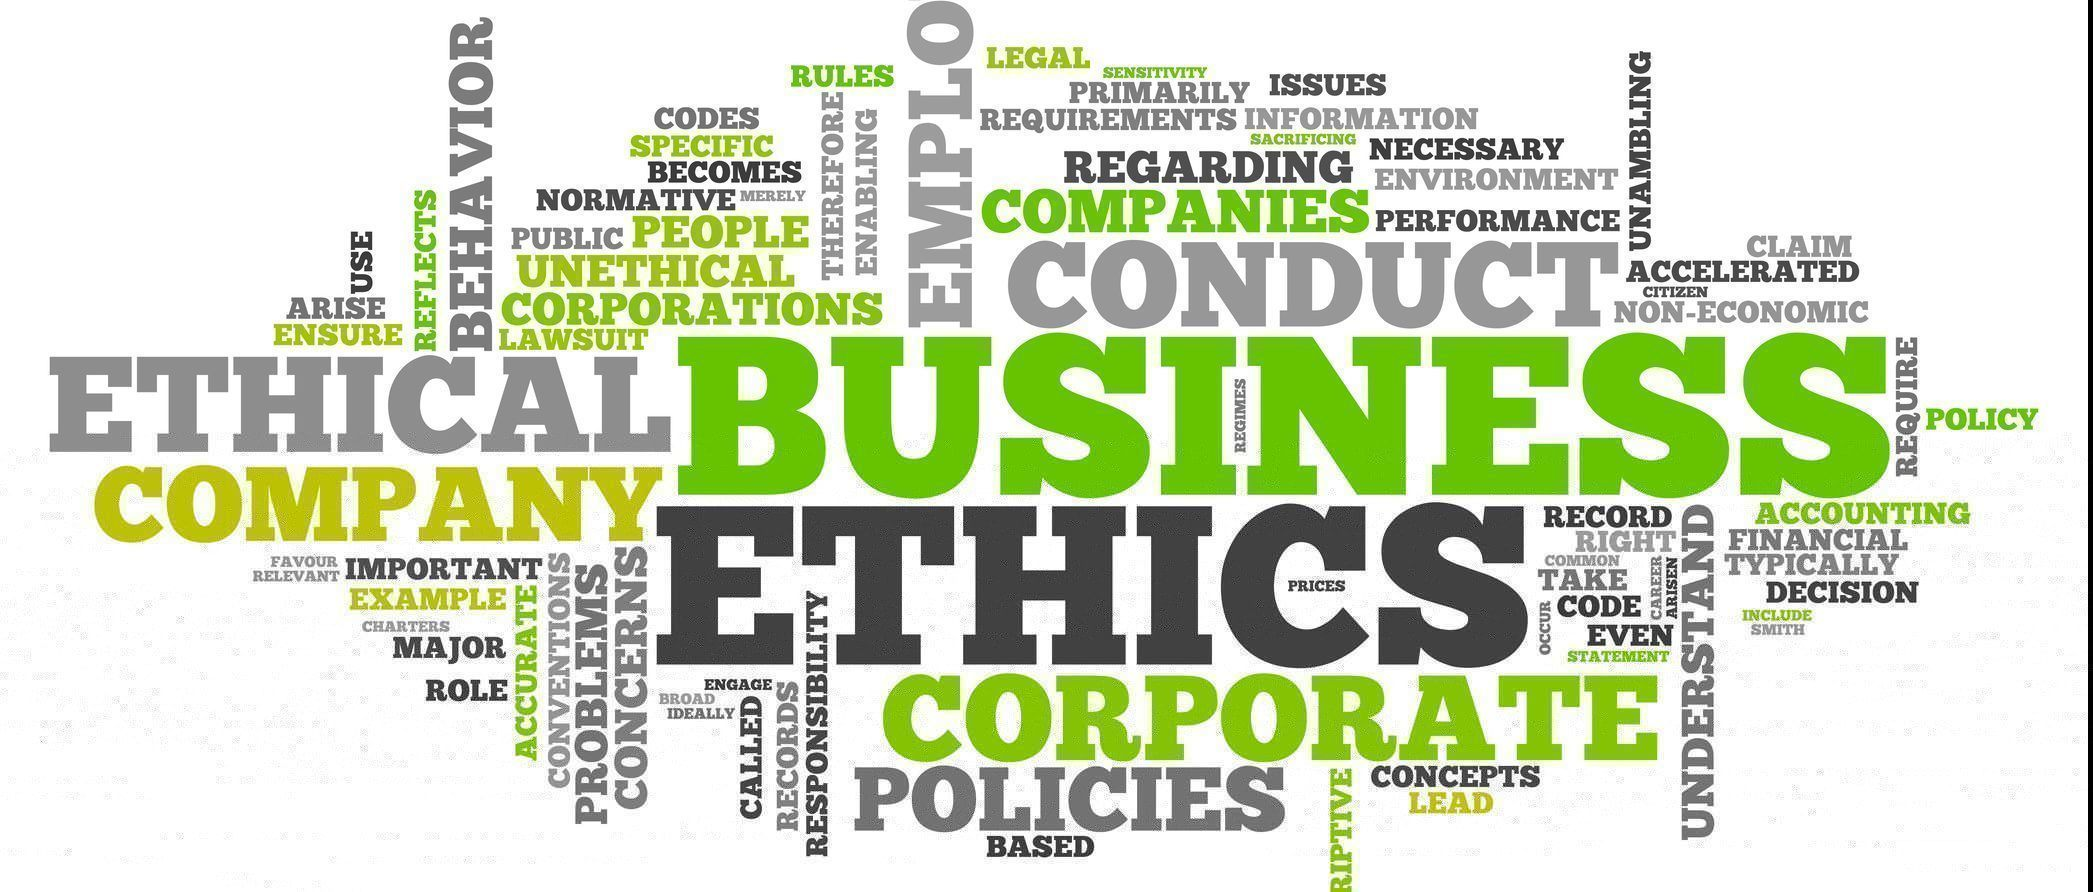 organizational ethics and code of conduct